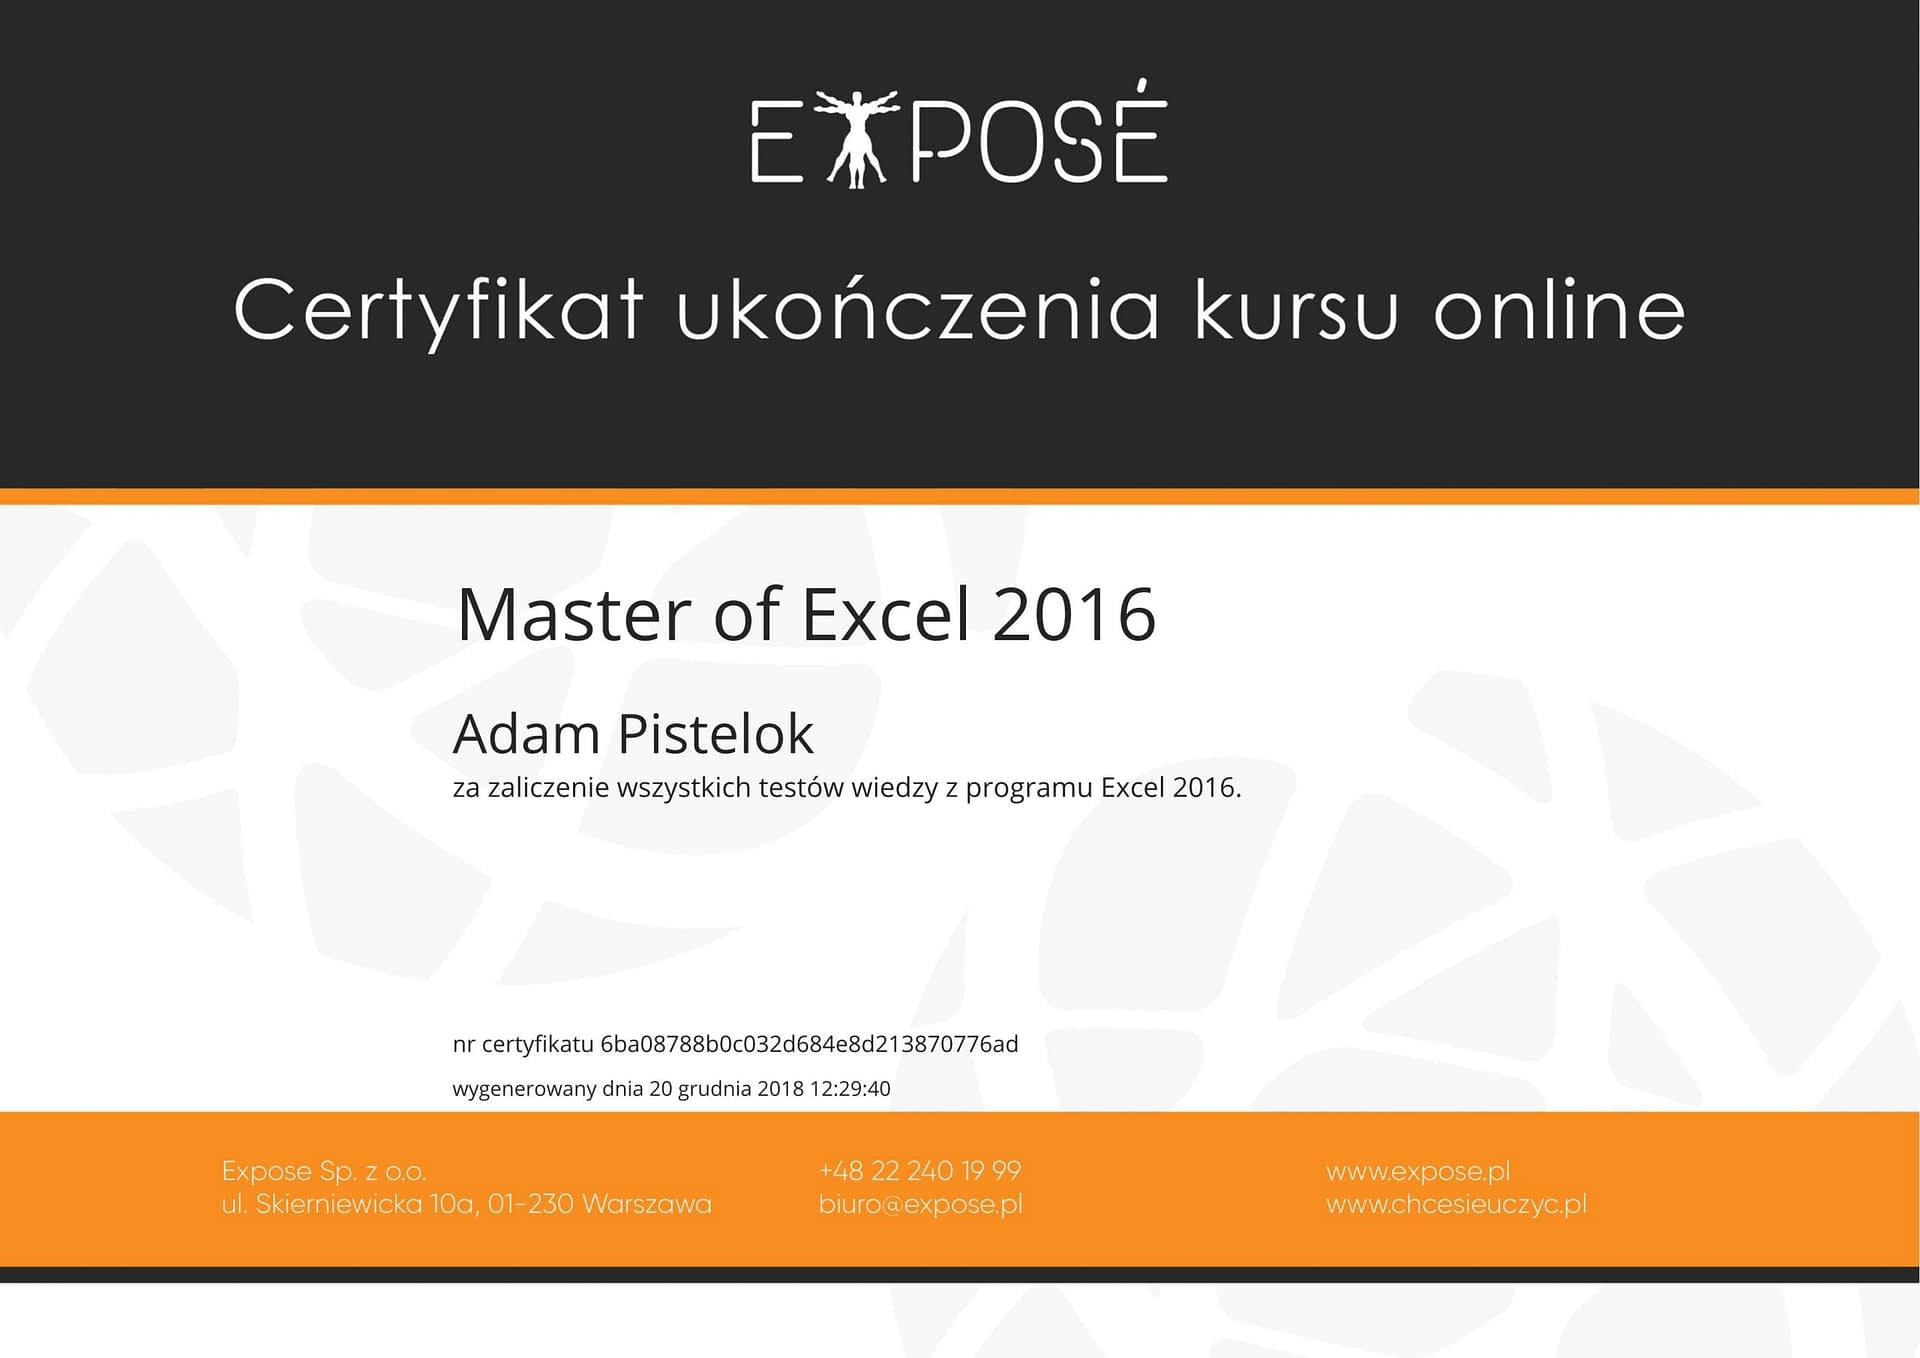 Master of excel